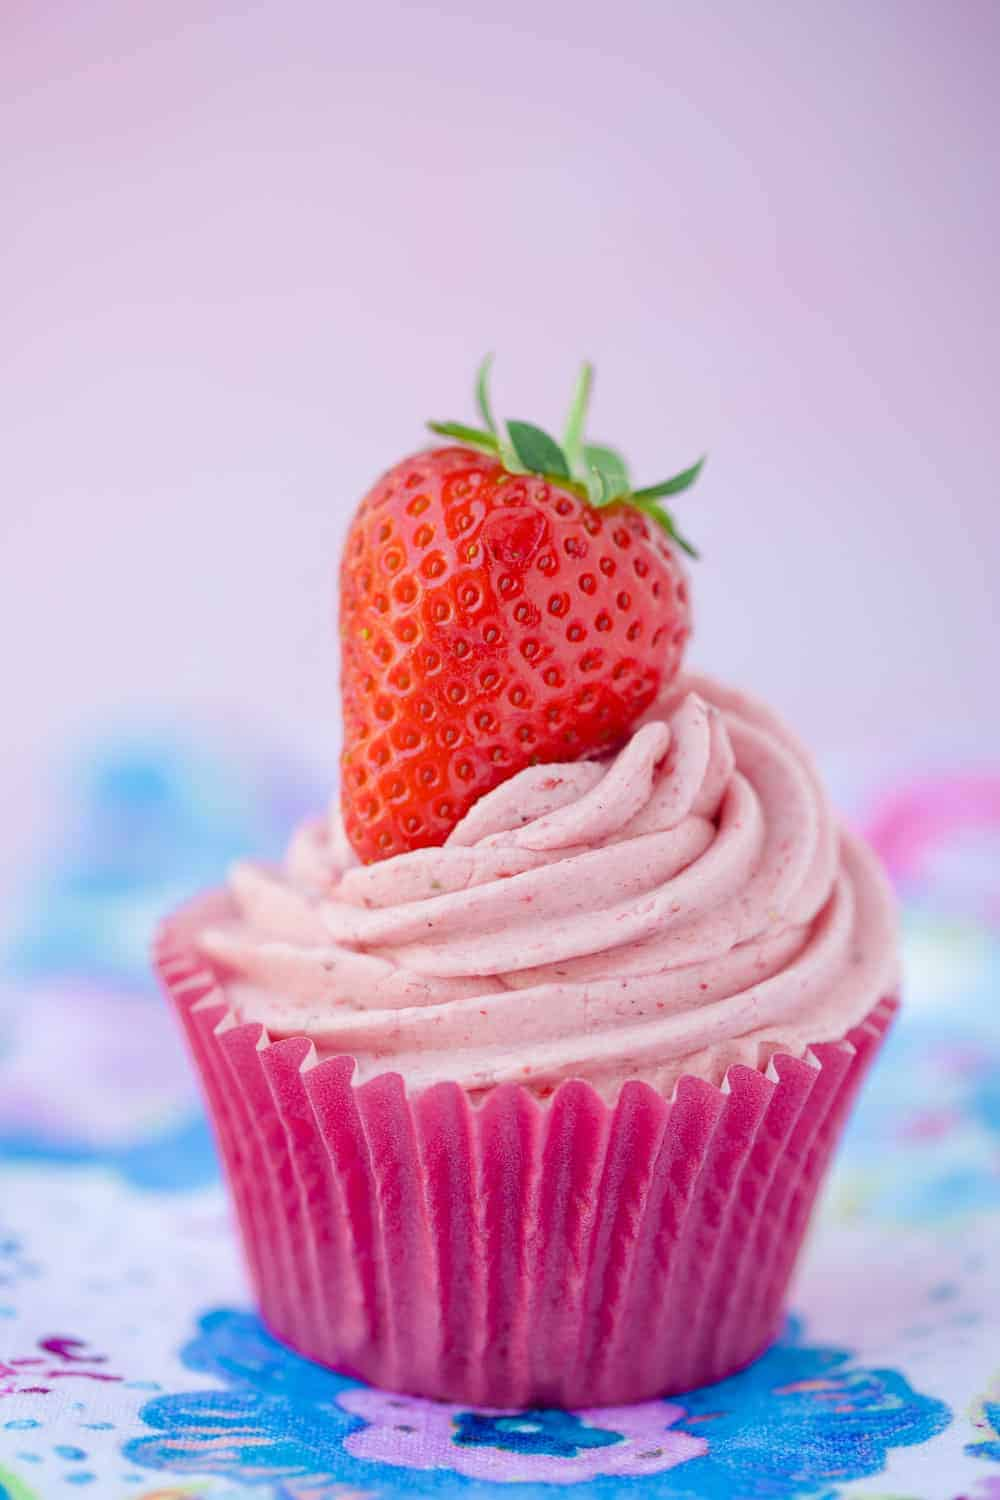 A cupcake topped with a swirl of pink strawberry frosting